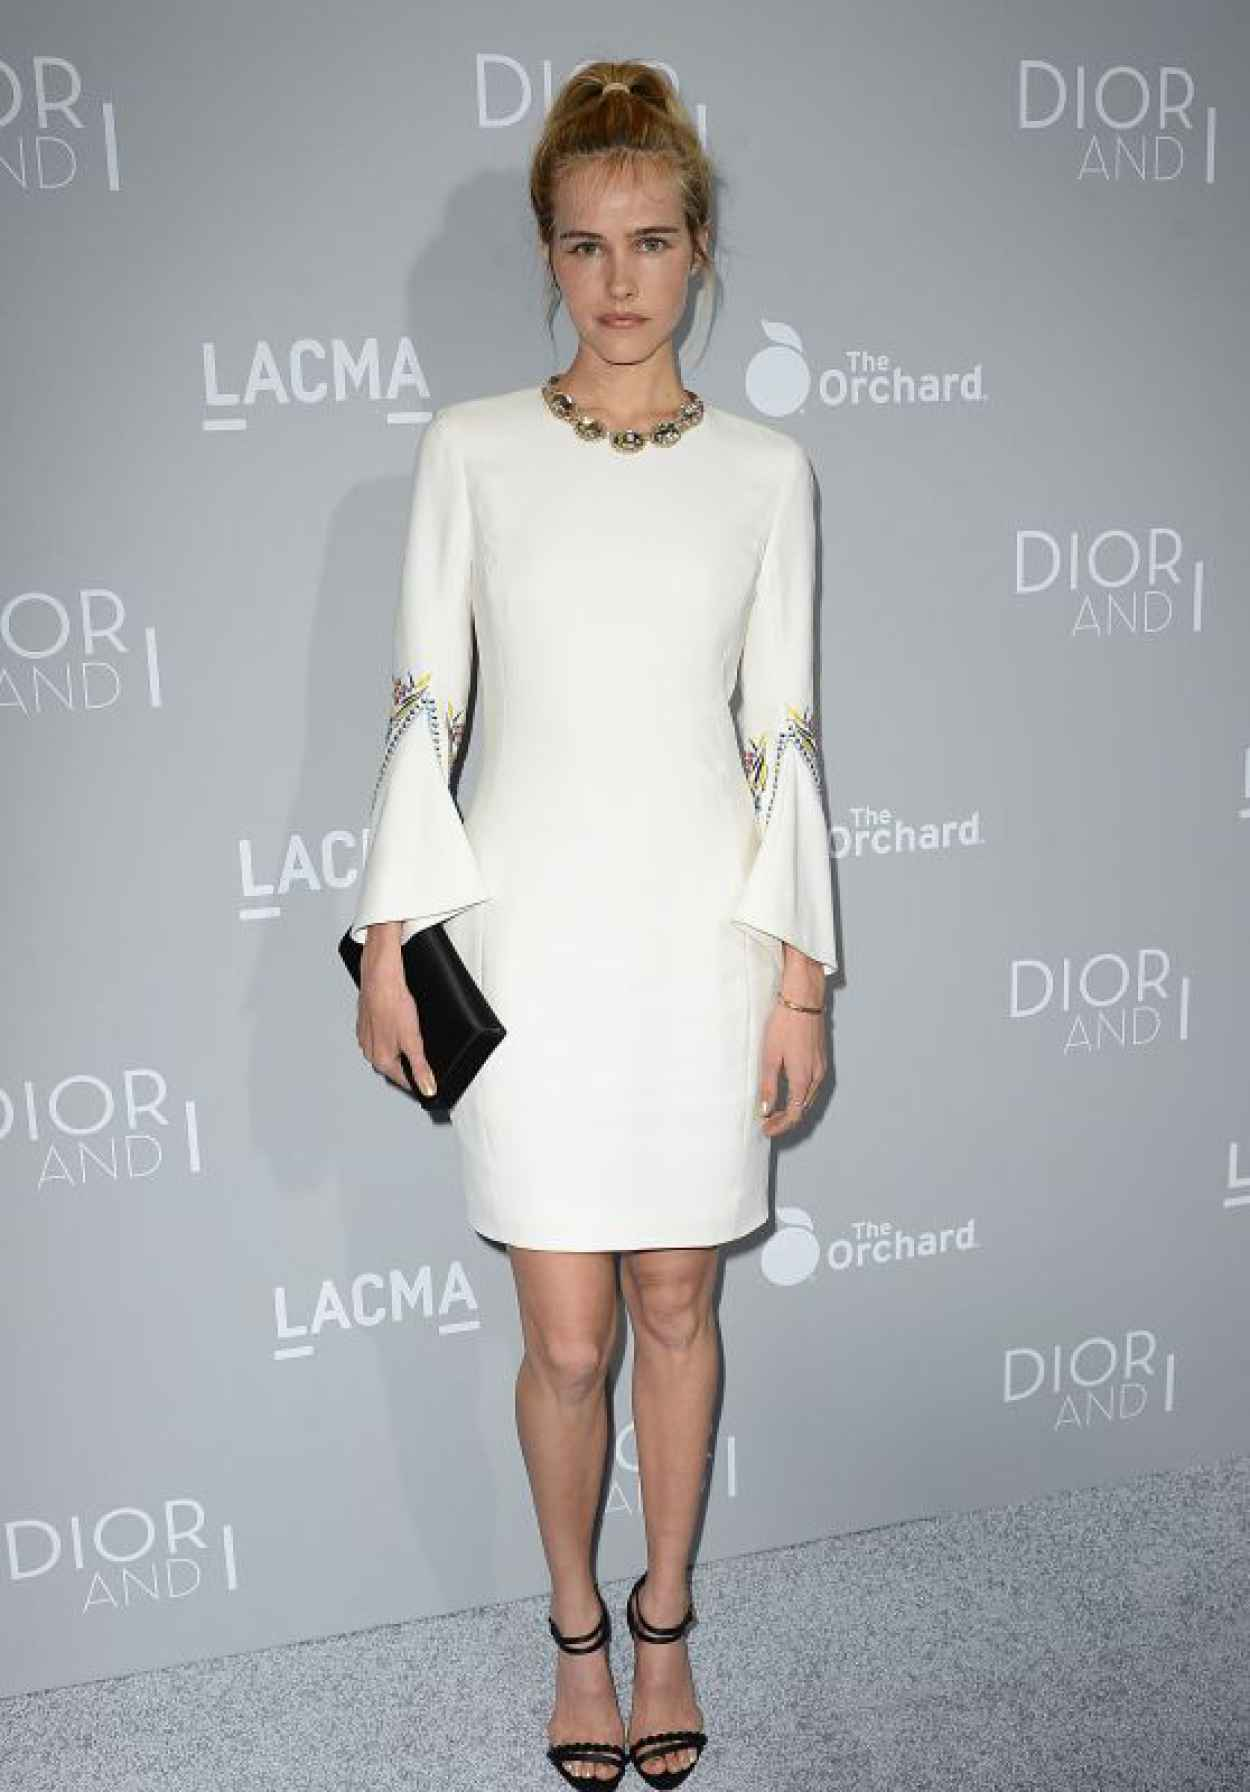 Isabel Lucas - Orchard Premiere of Dior and I in Los Angeles-1